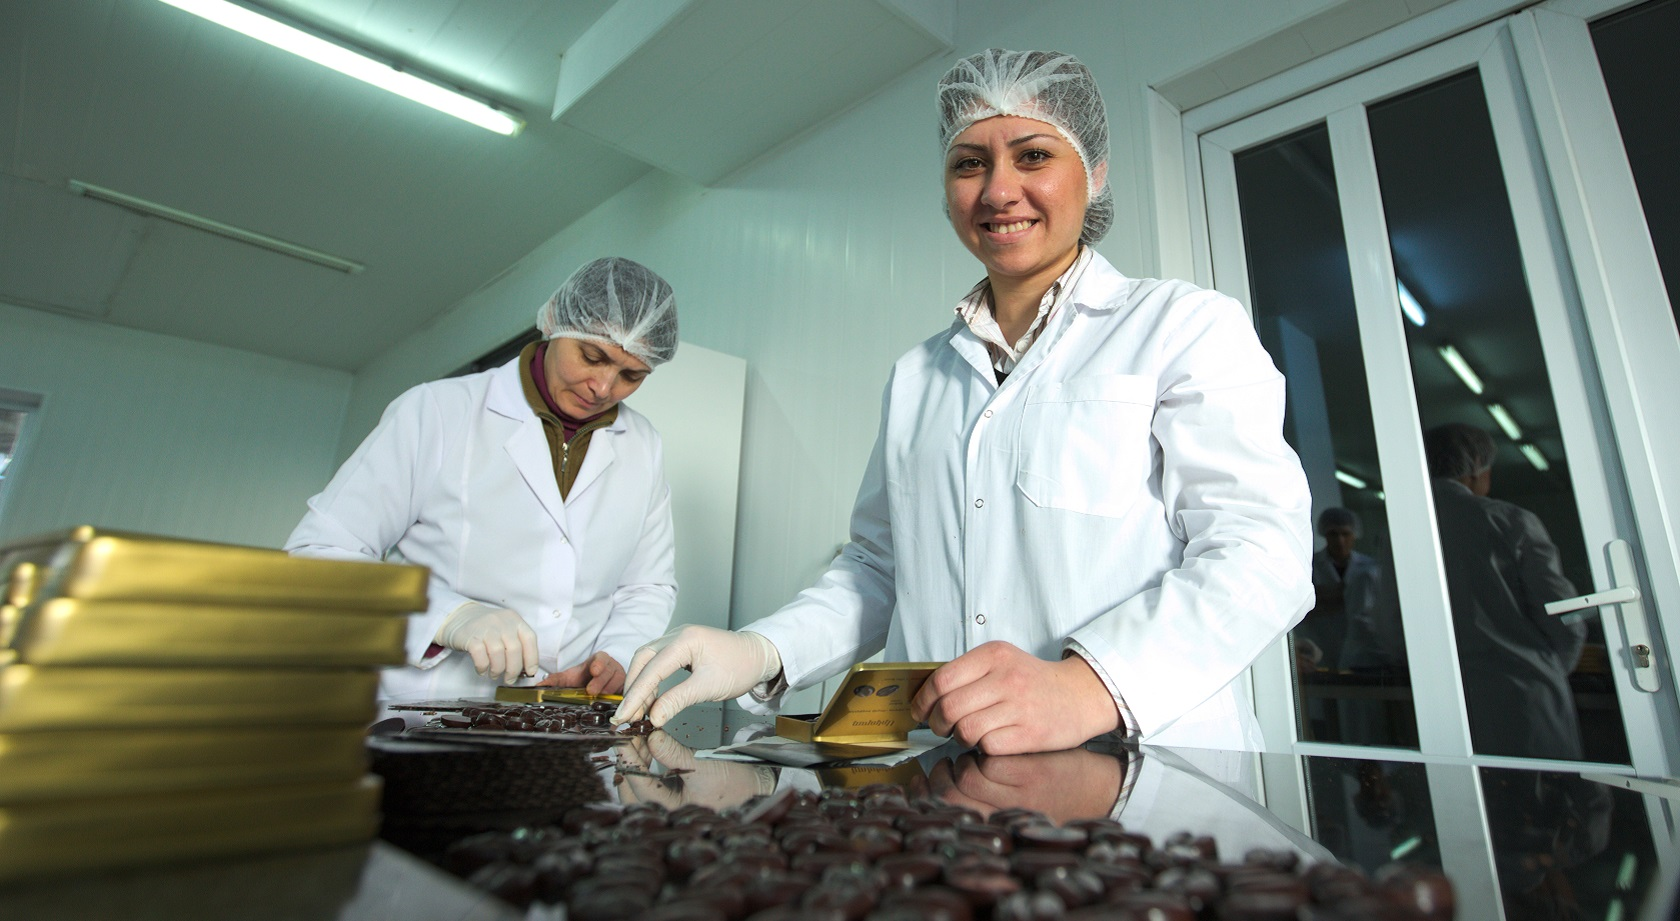 Two women wearing hair nets and white jackets working in chocolate factory